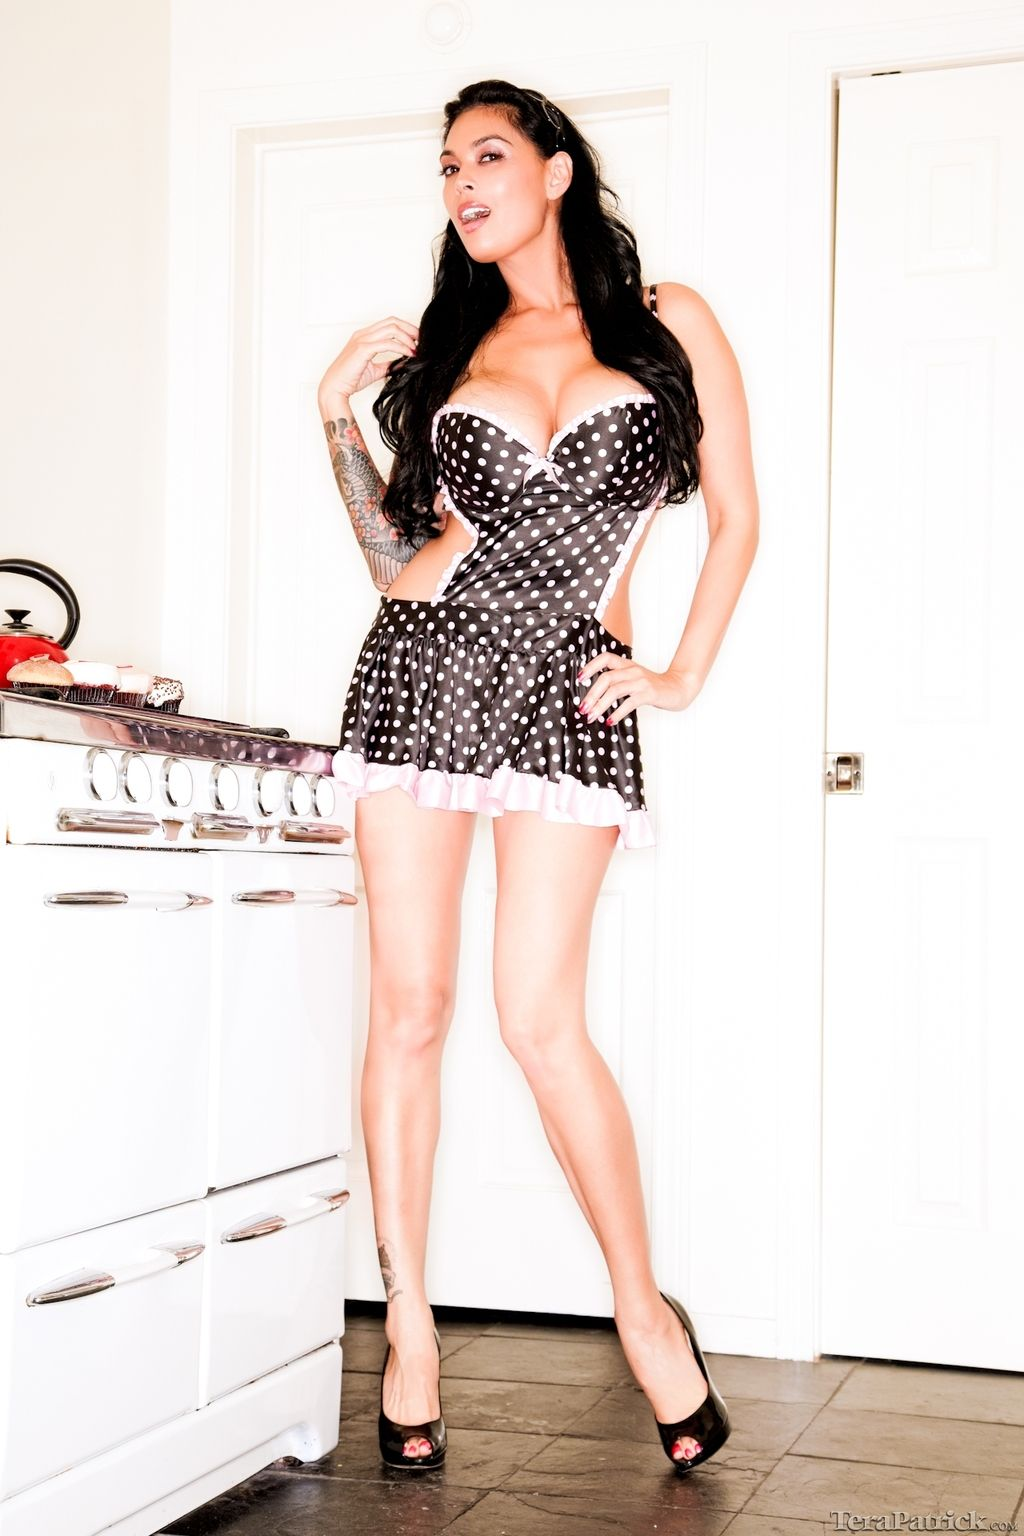 Tera Patrick「Tera Takes Off Black White-Dotted Apron in Kitchen ...